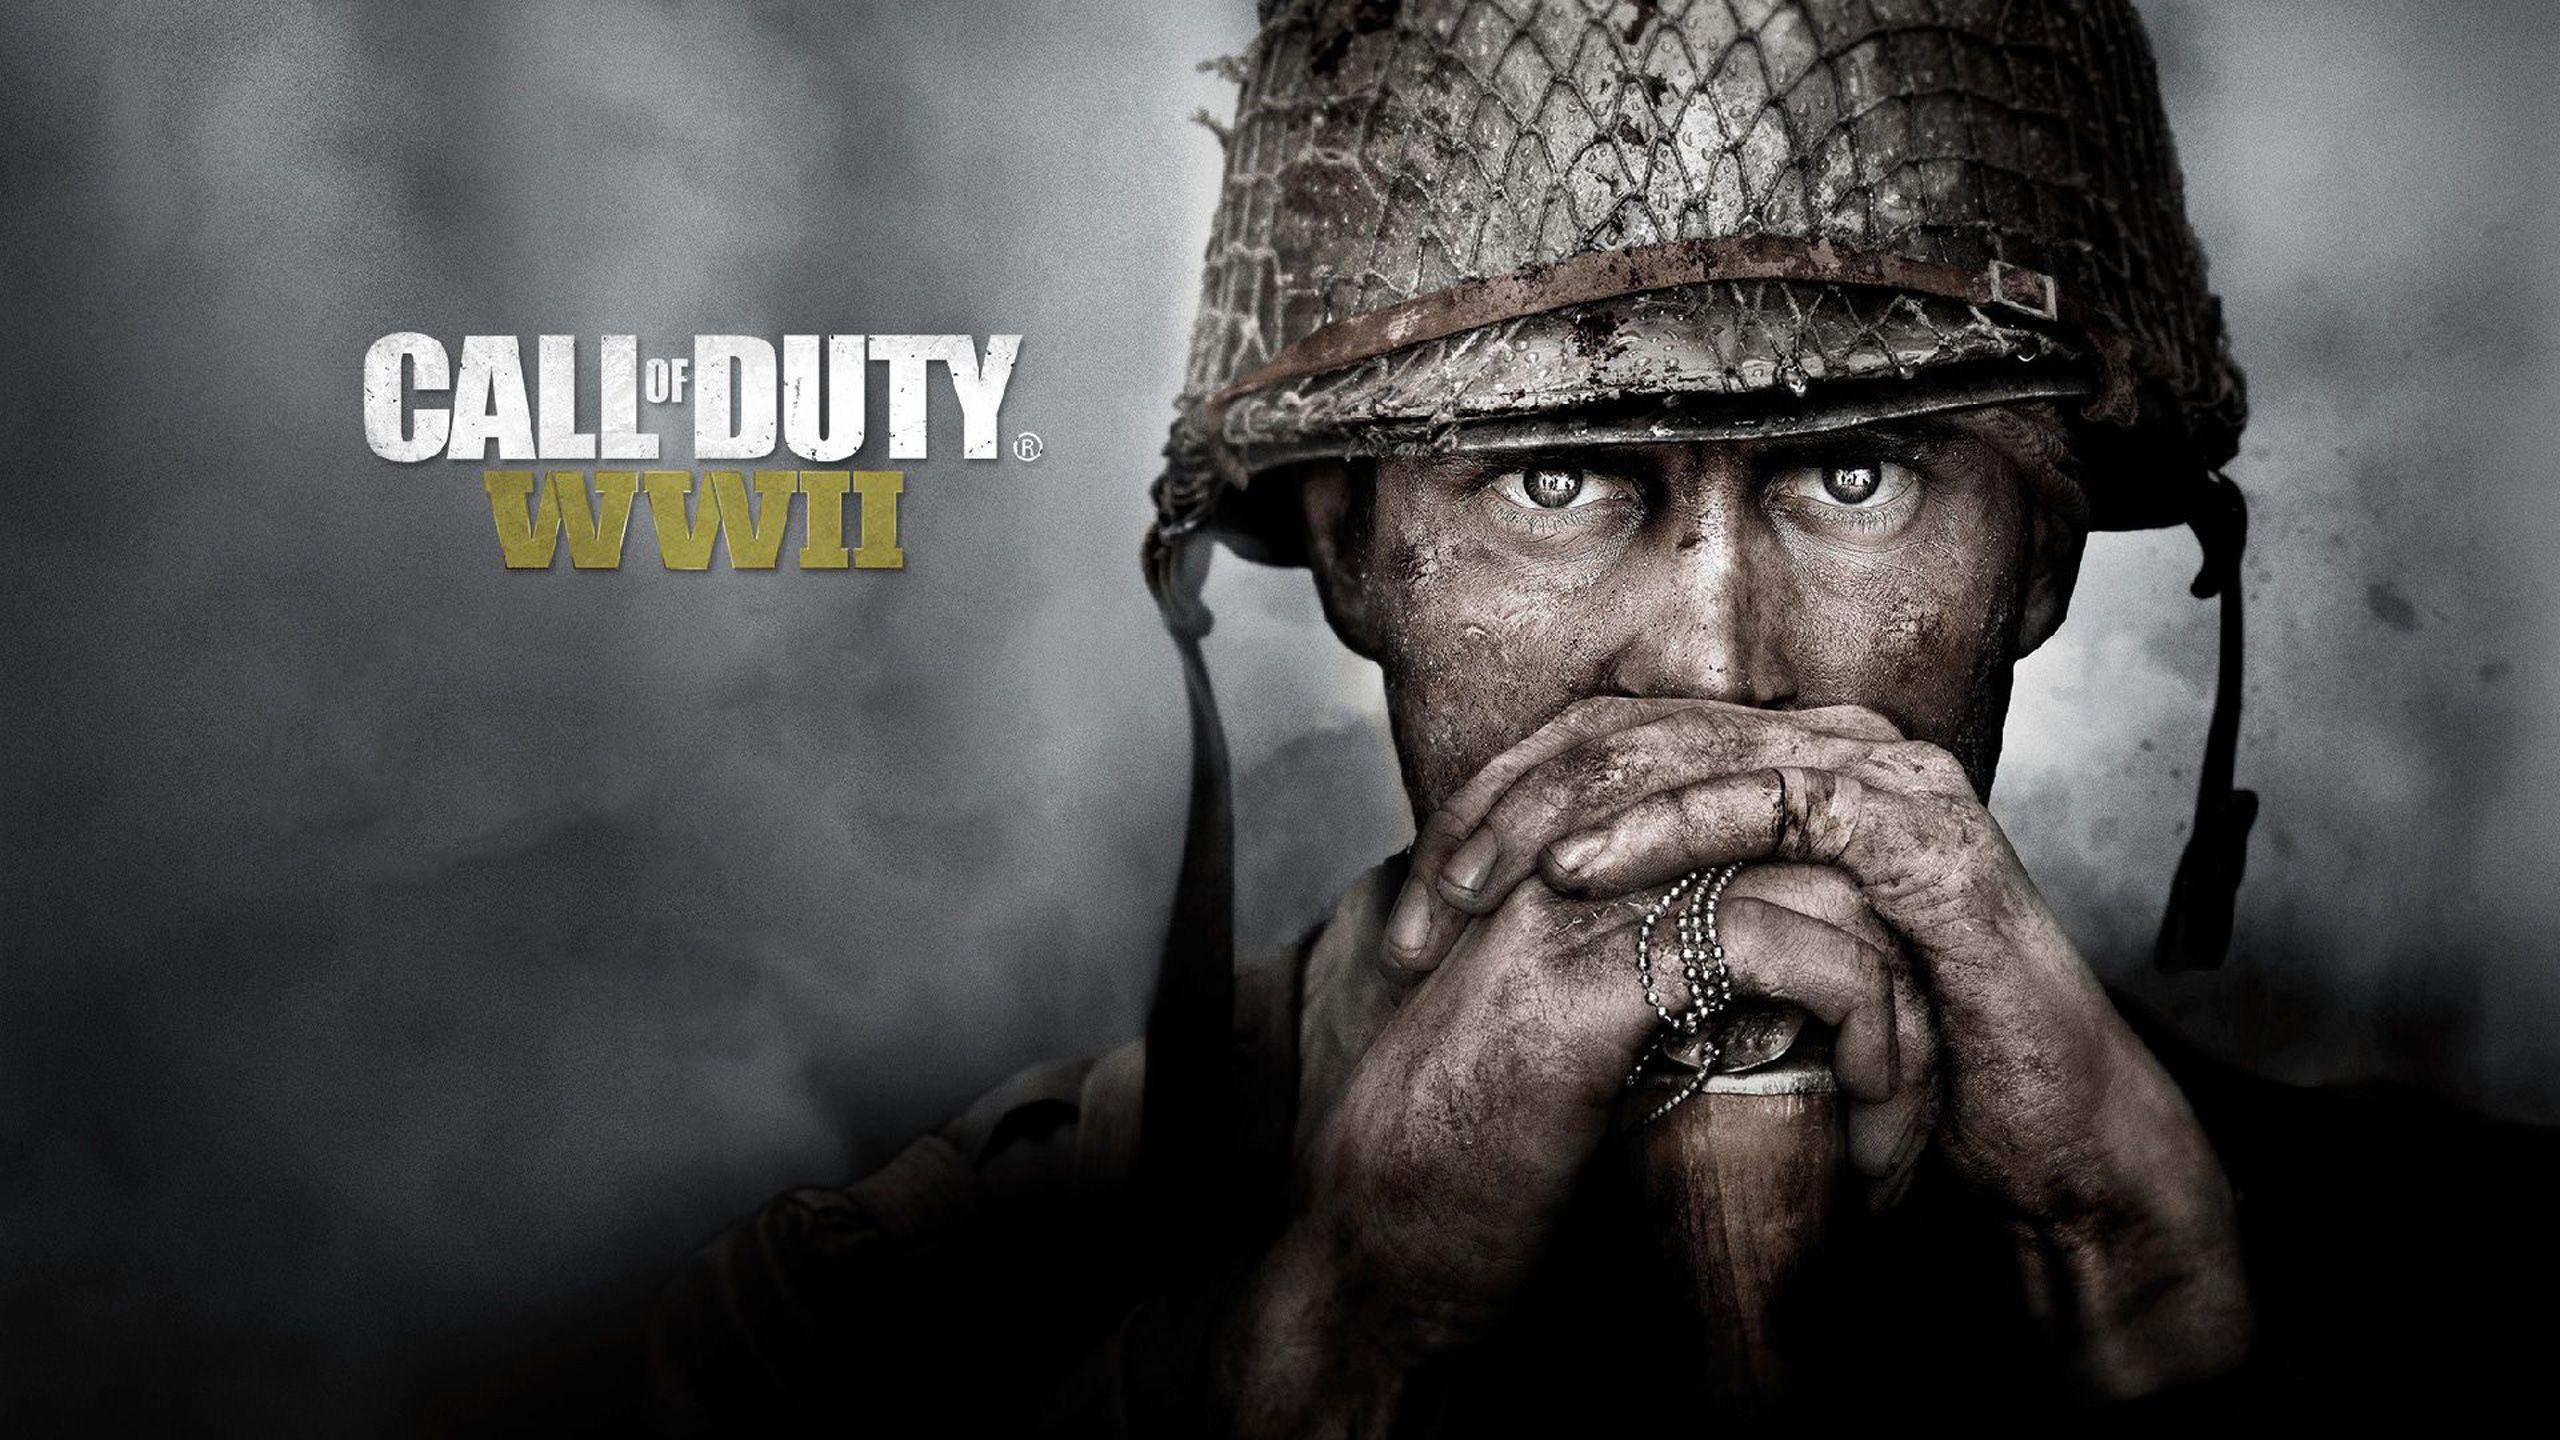 Call Of Duty WWII, HD Games, 4k Wallpapers, Images, Backgrounds ...